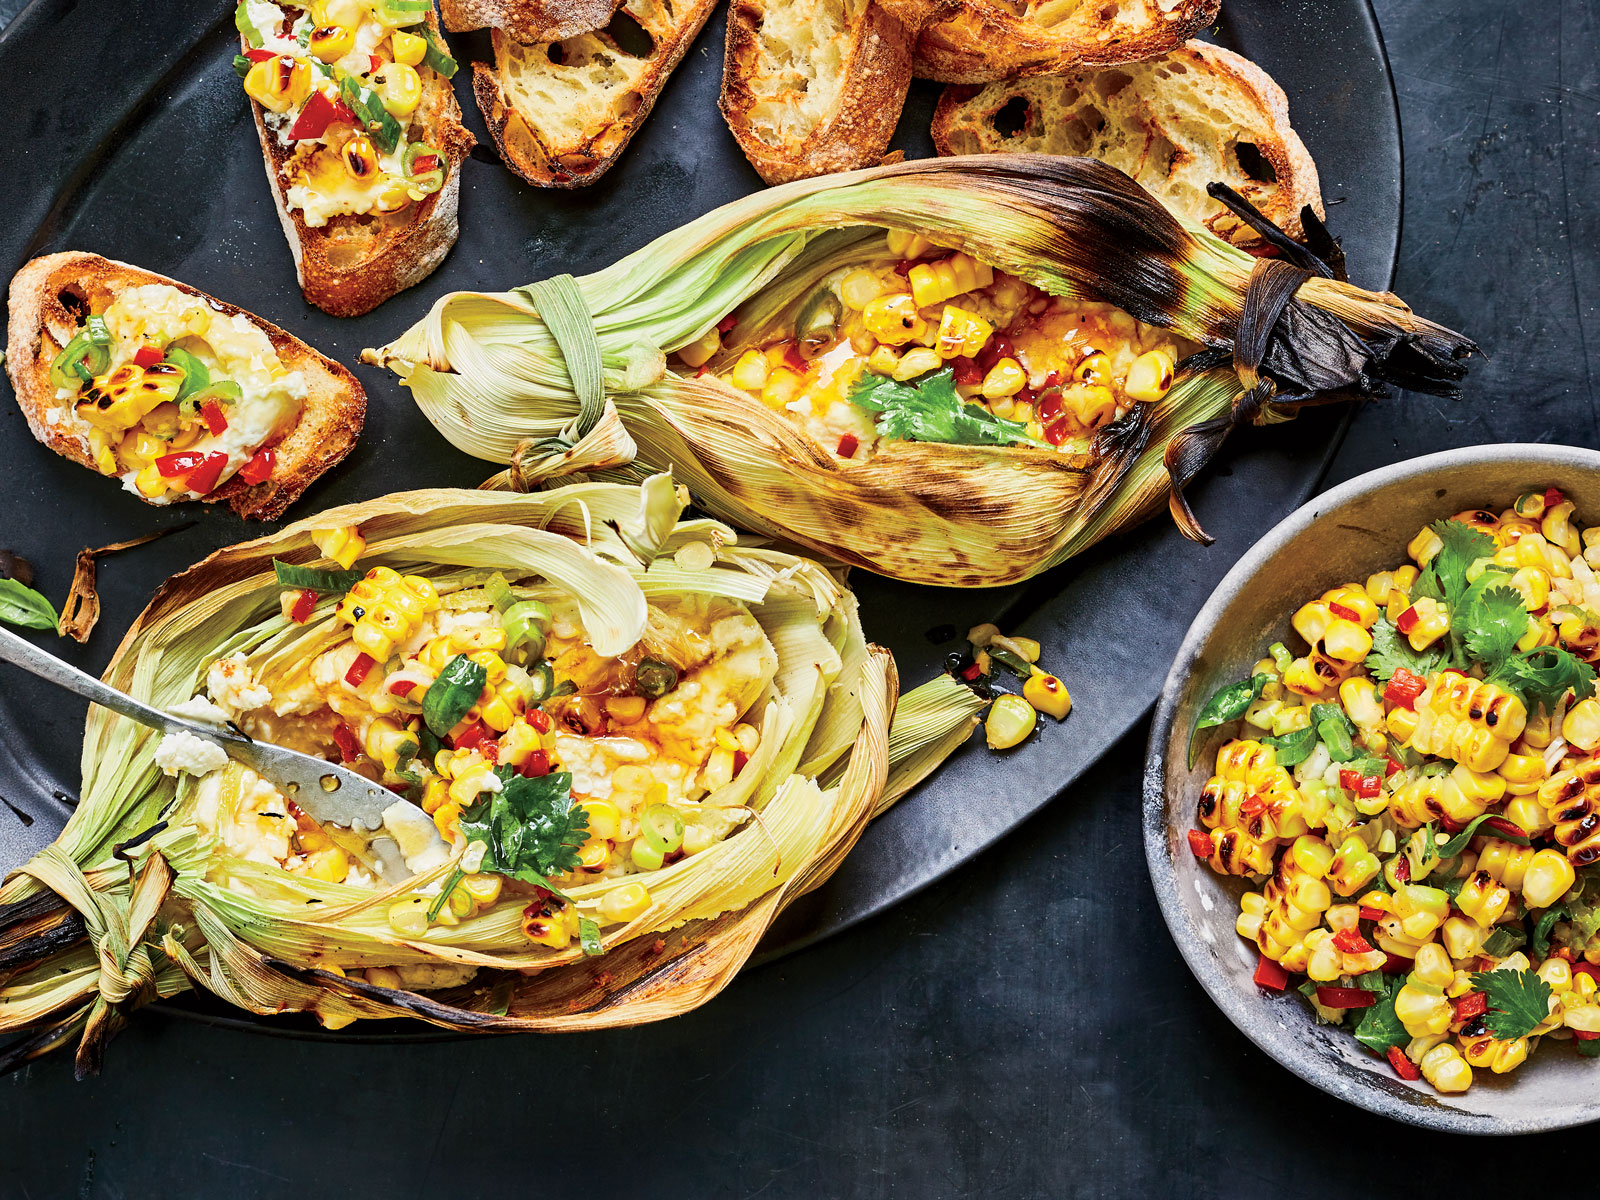 Corn Husk–Grilled Goat Cheese with Corn Relish and Honey